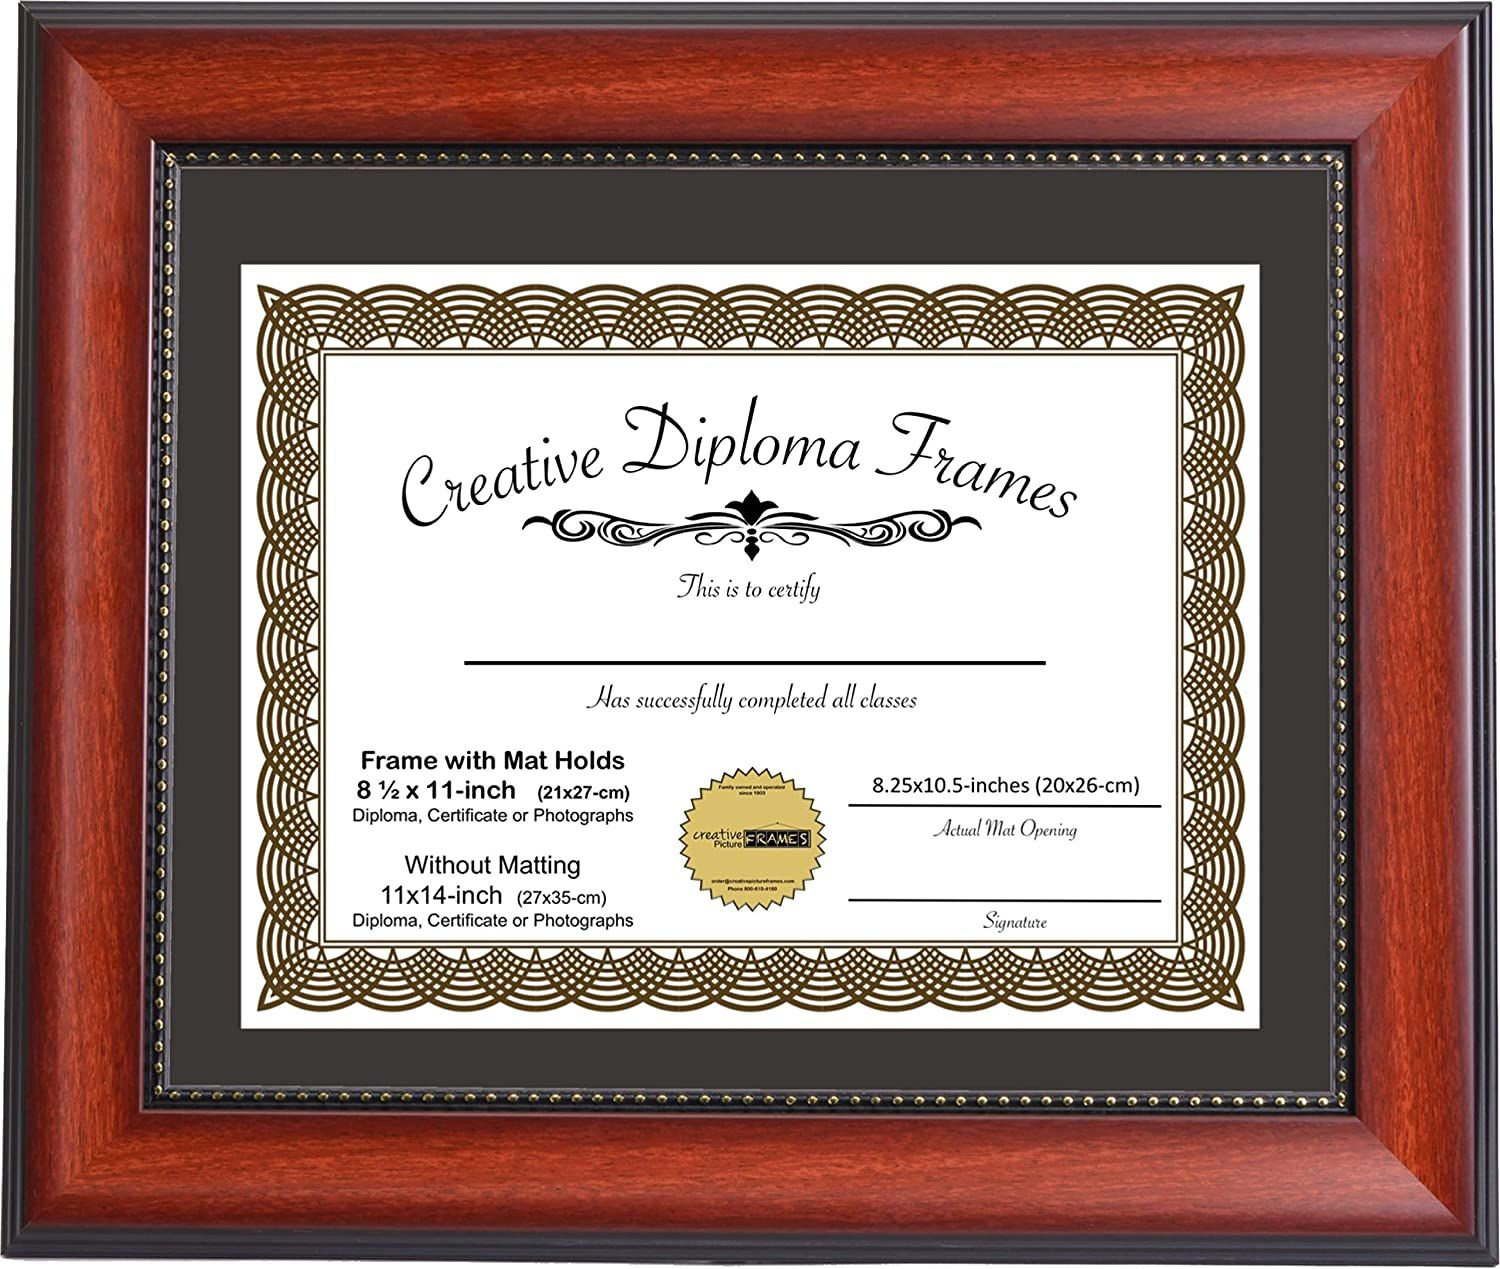 Creative Picture Frames 11x14 Inch Eco Mahogany Diploma Frame With Black Mat To Hold 8 5x11 Media A4 Document Includes Installed Hangers Check This Awe In 2020 Frame